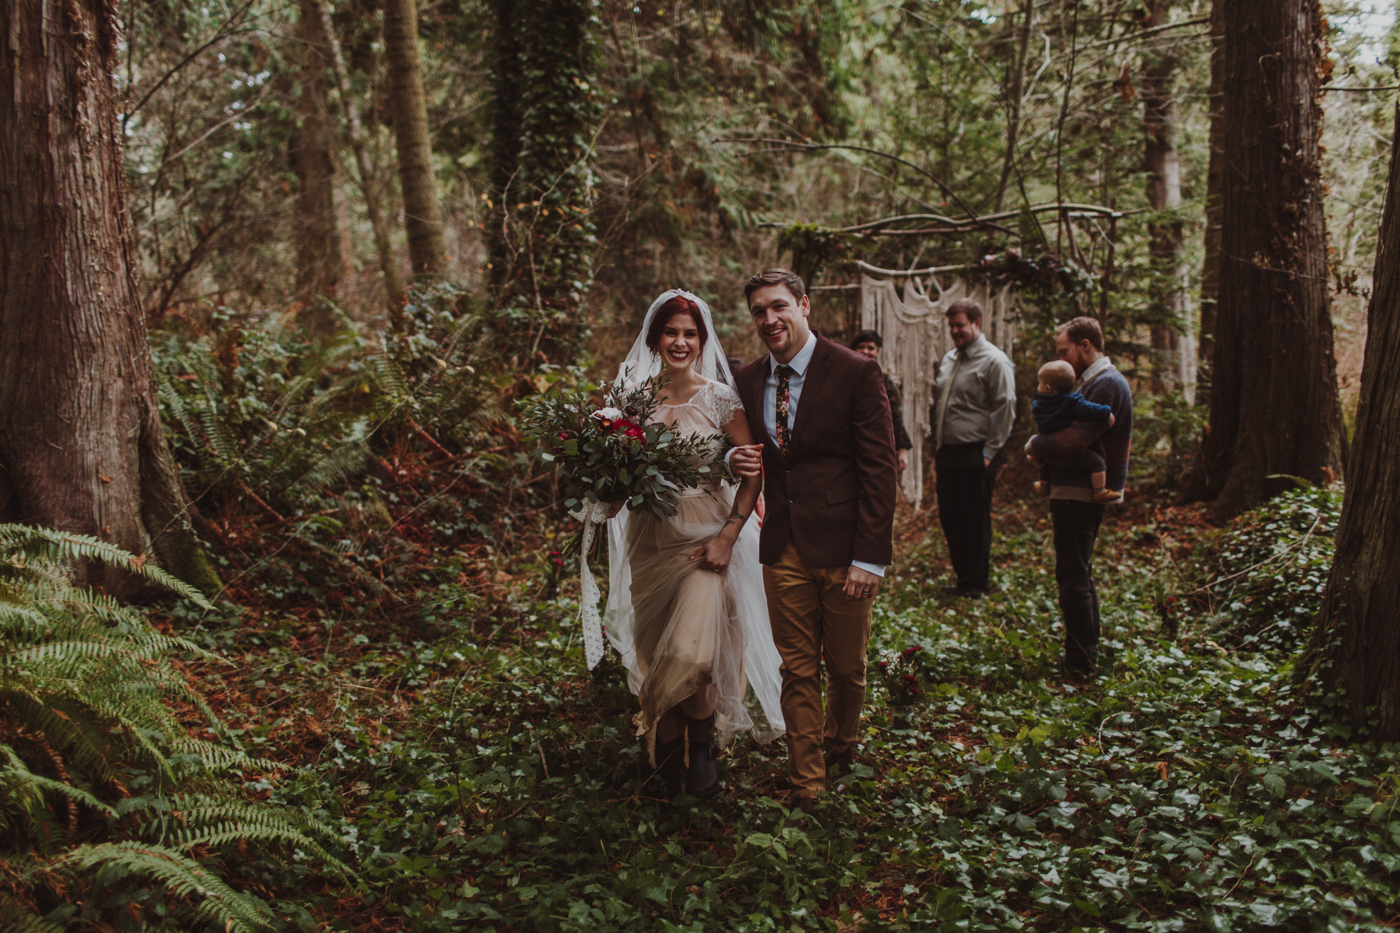 Olympic Peninsula Elopement-LizMorrow-87.jpg